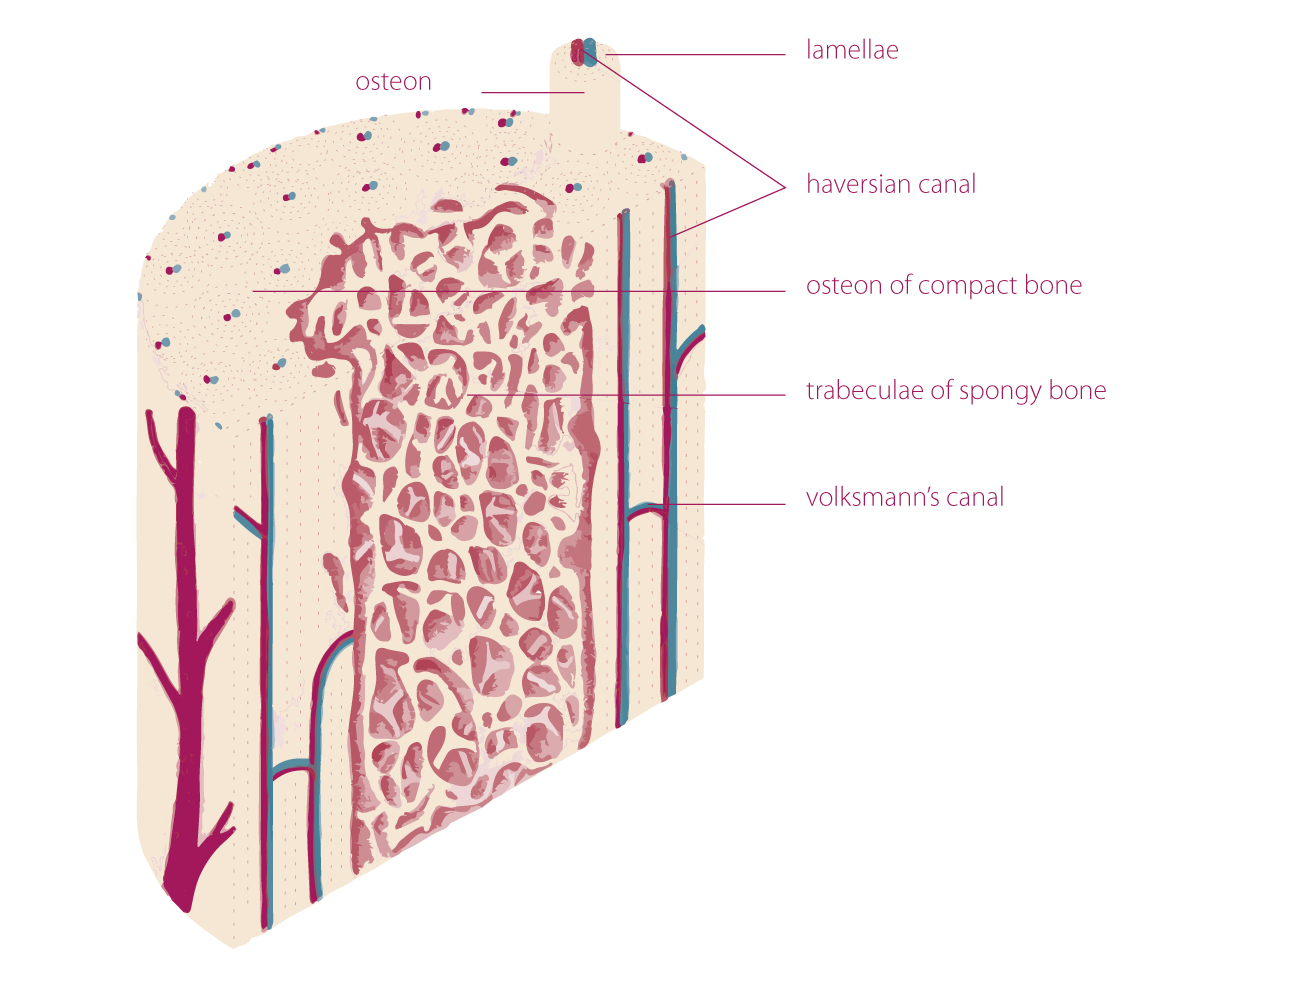 hight resolution of  endosteum and periosteum 1 4 5 the periosteum is a double layered membrane surrounds the external surface of the bone except for the joints surfaces 1 2